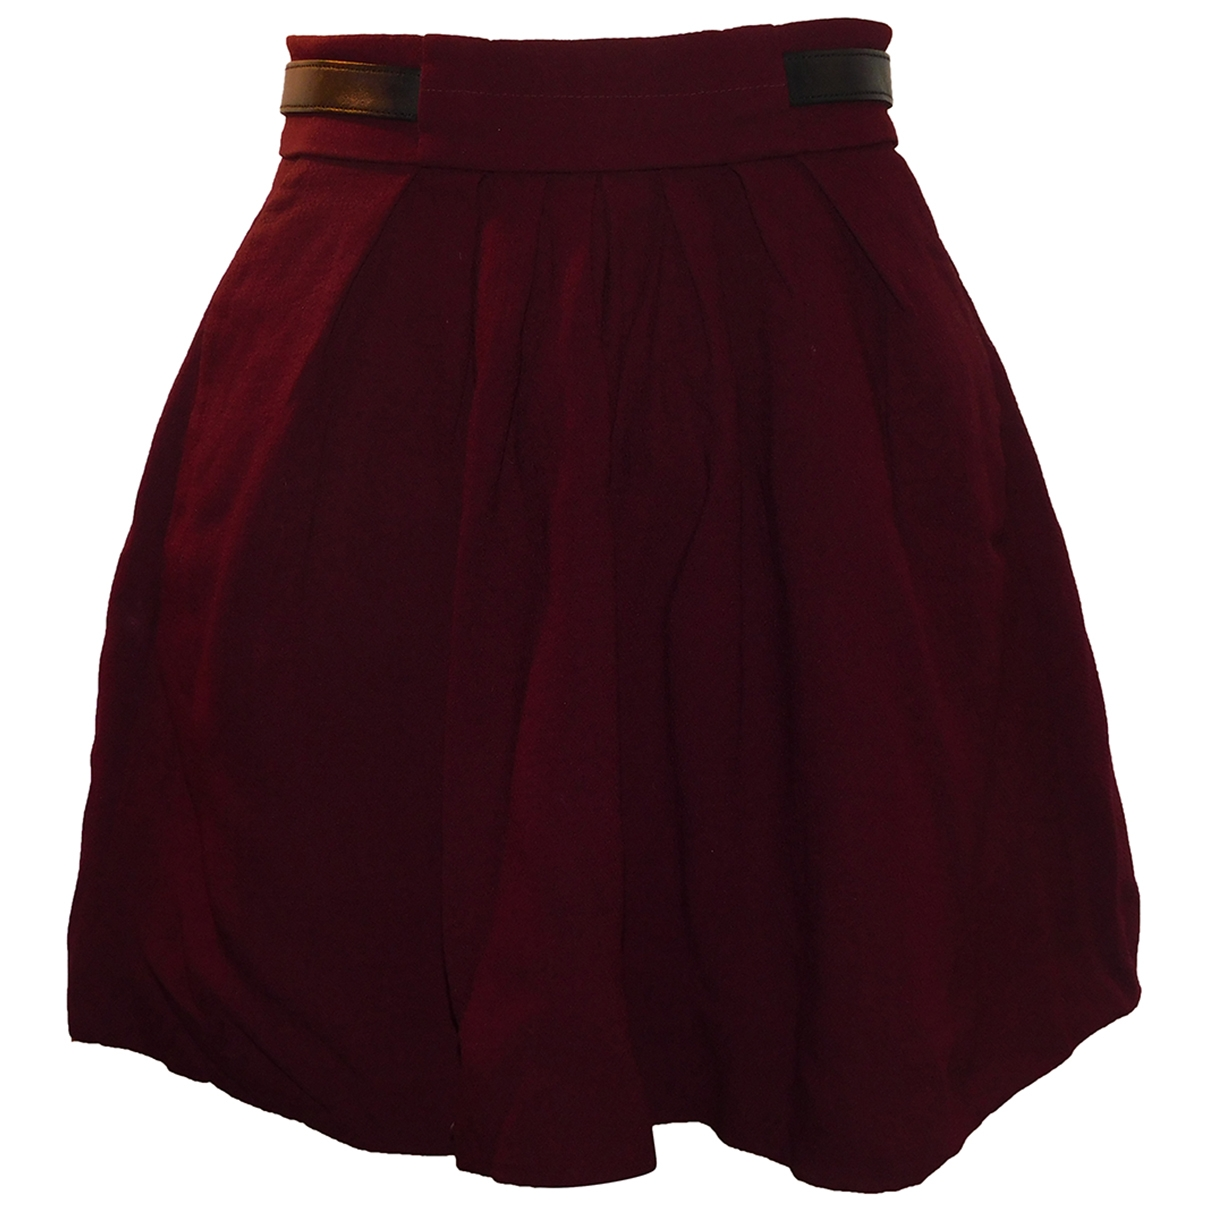 The Kooples \N Burgundy Cotton skirt for Women 34 FR